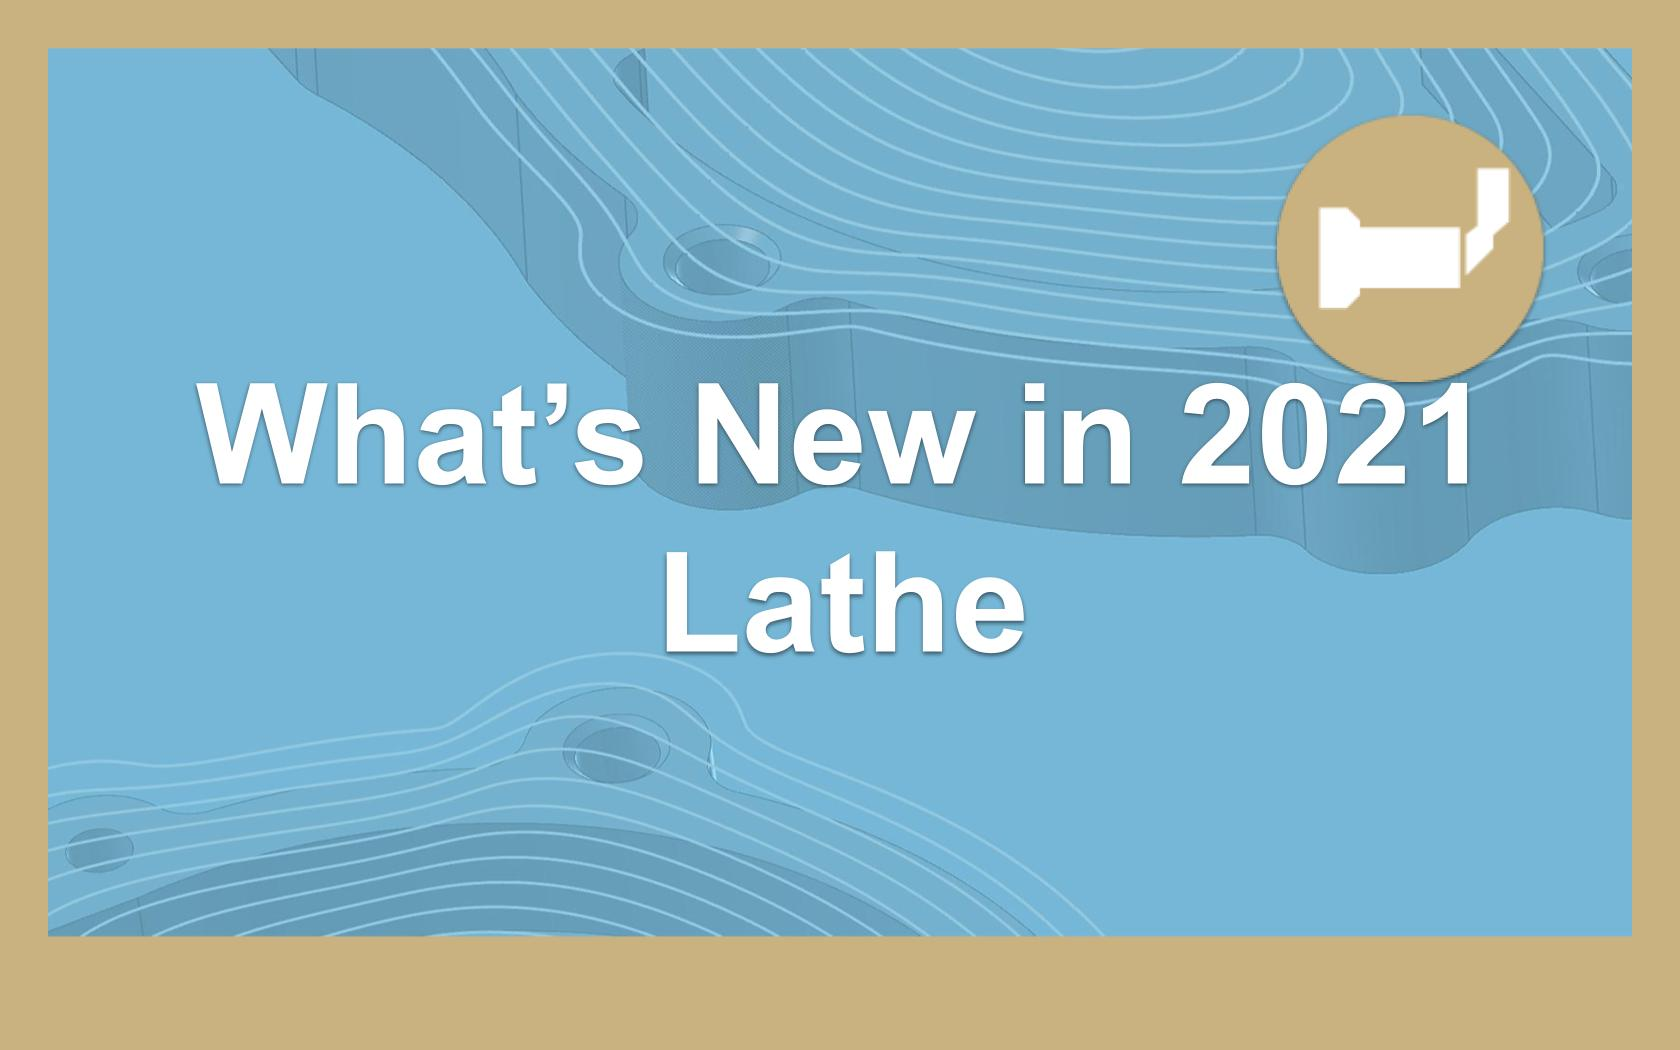 What's New in 2021 - Lathe